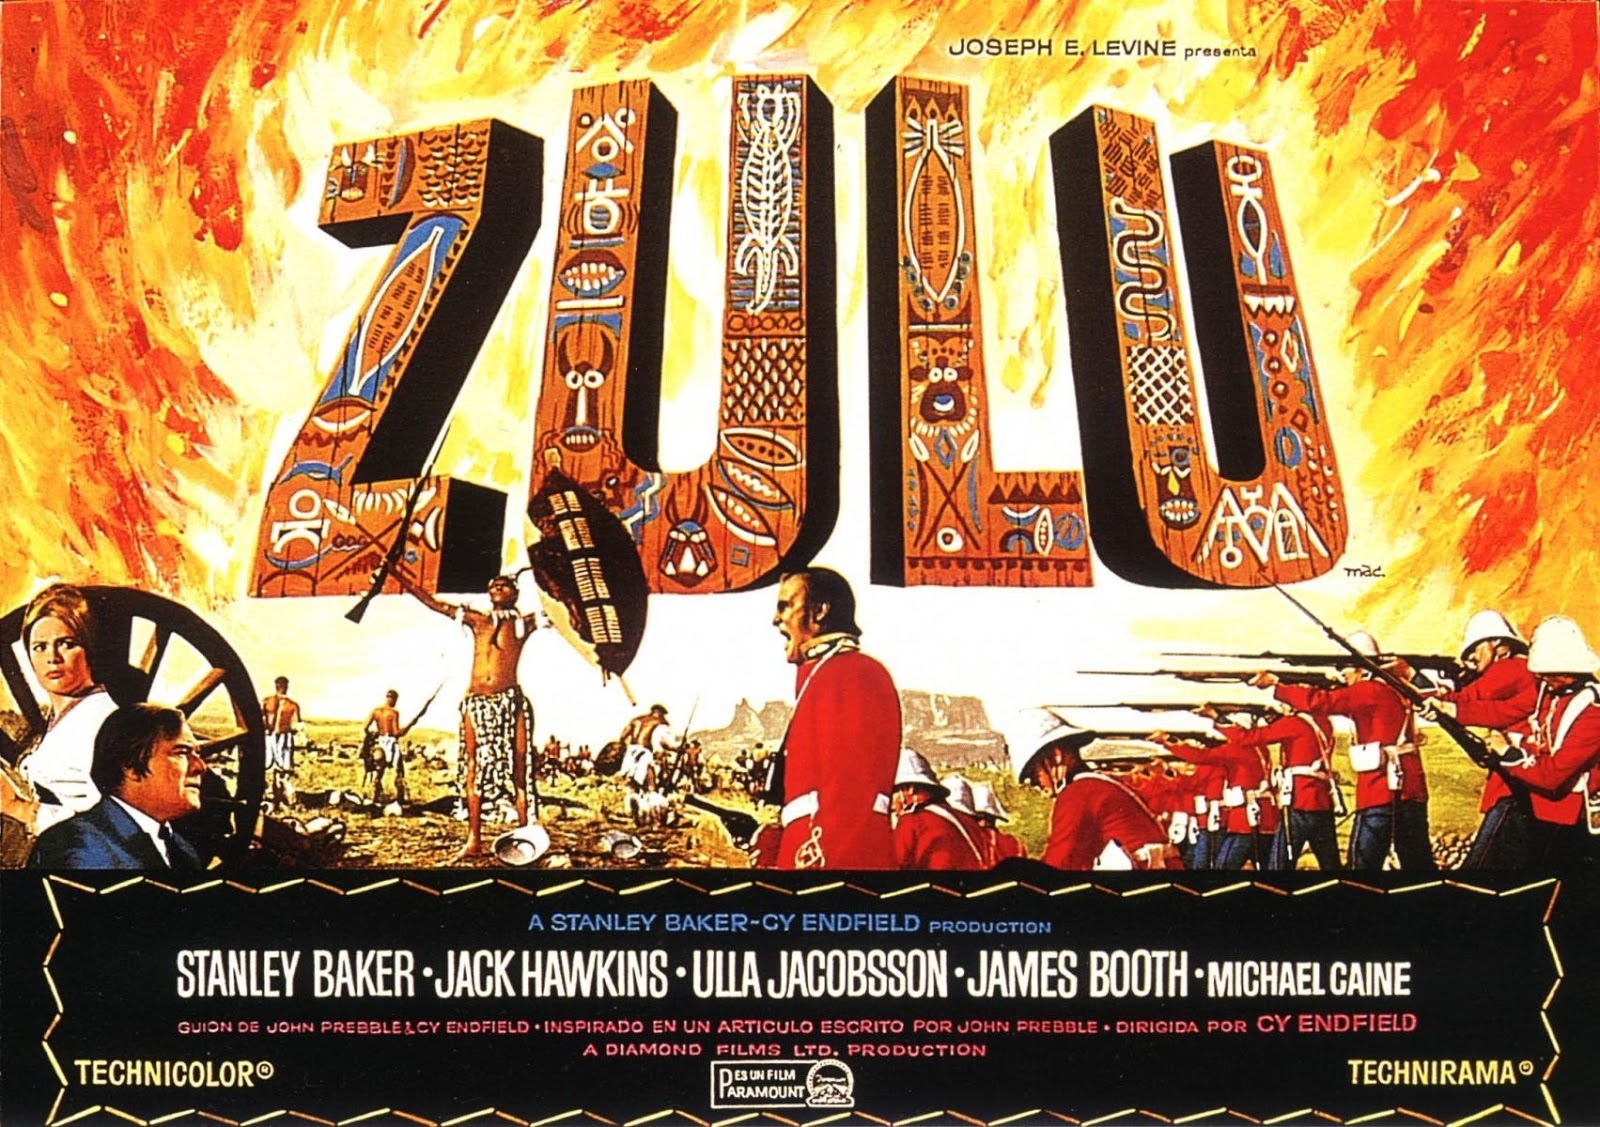 The greenman ten things the film zulu got wrong the 1964 film zulu is one of my favourite war films it is a dramatic story well acted by both professional british thespians and amateur zulu extras stopboris Images